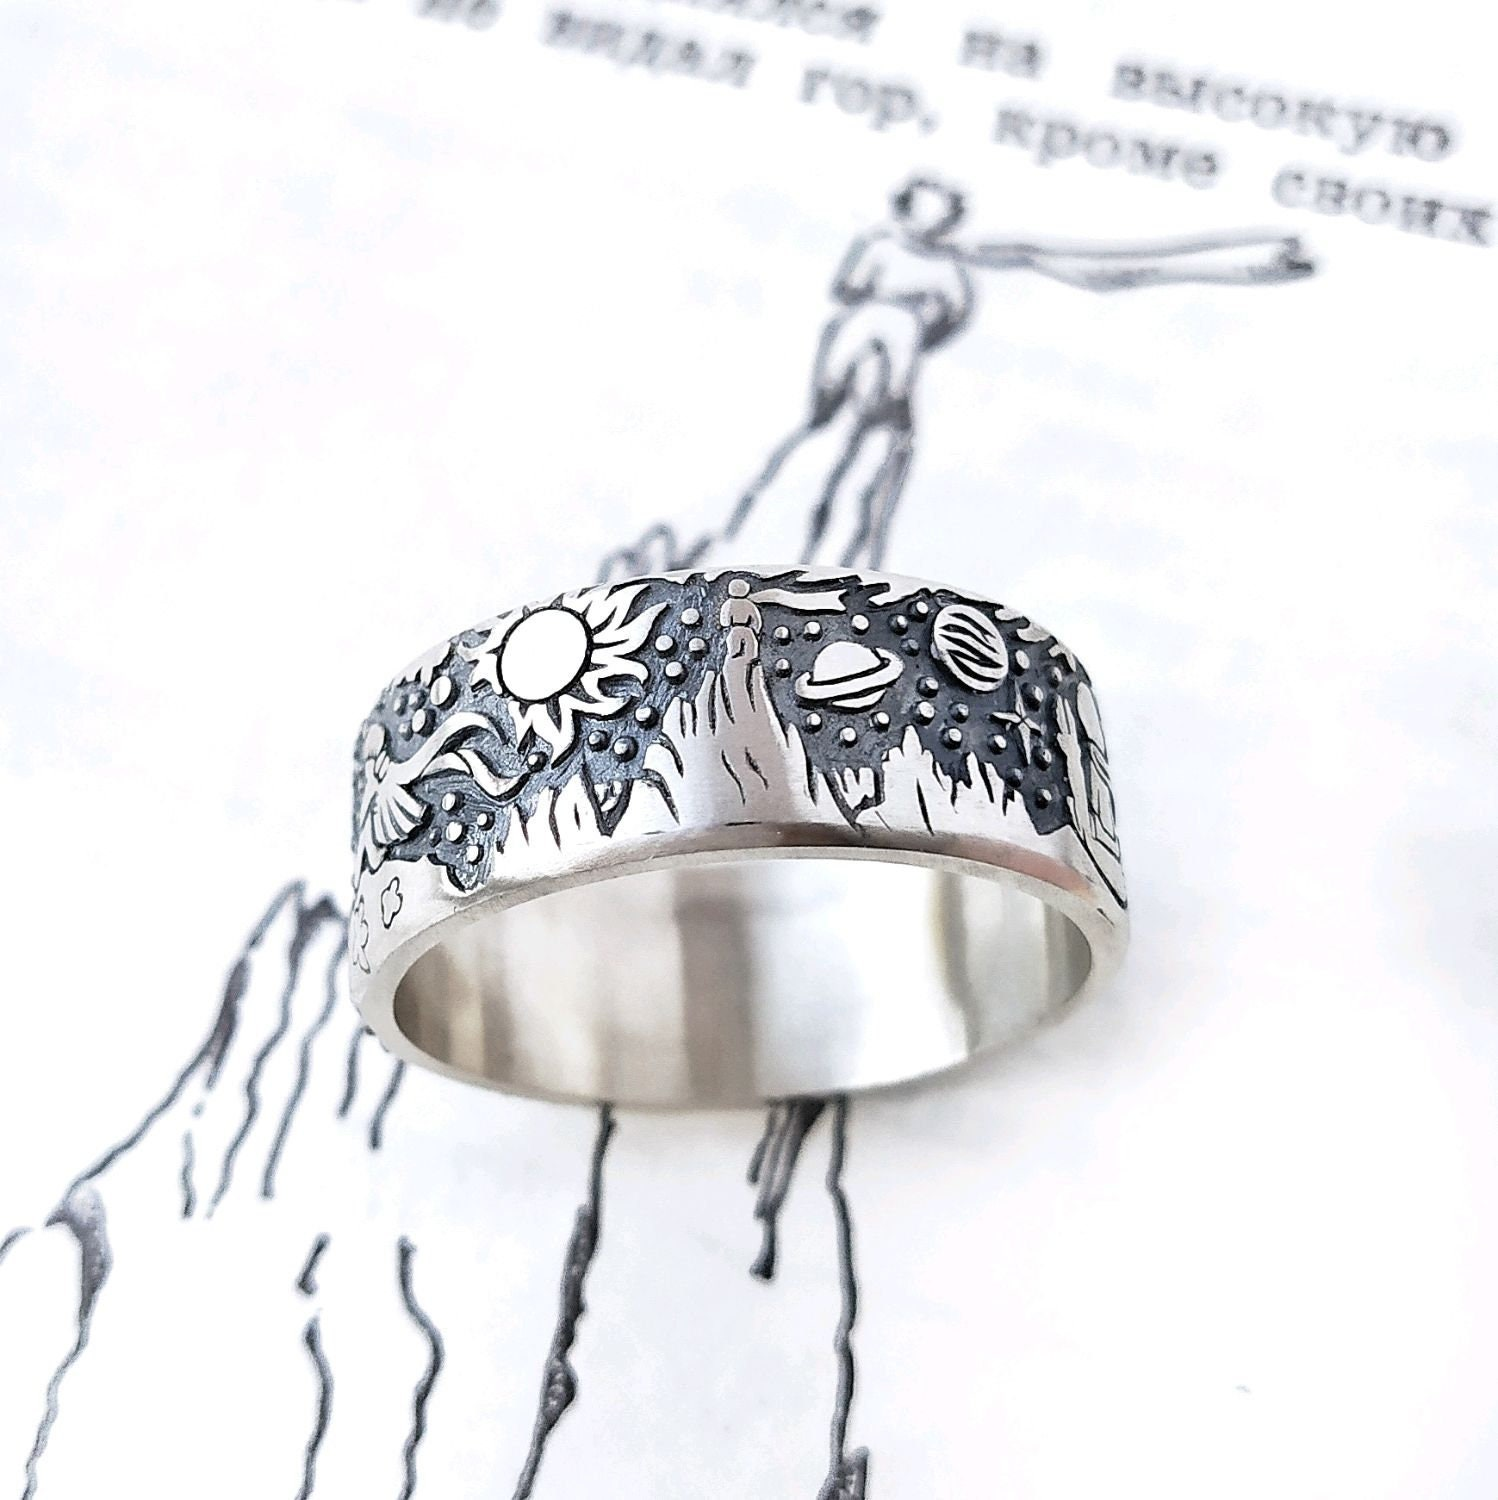 The Little Prince Ring, Man ring, Wide ring, Silver Ring, The Little Prince, Antoine de Saint-Exupéry, Exupery